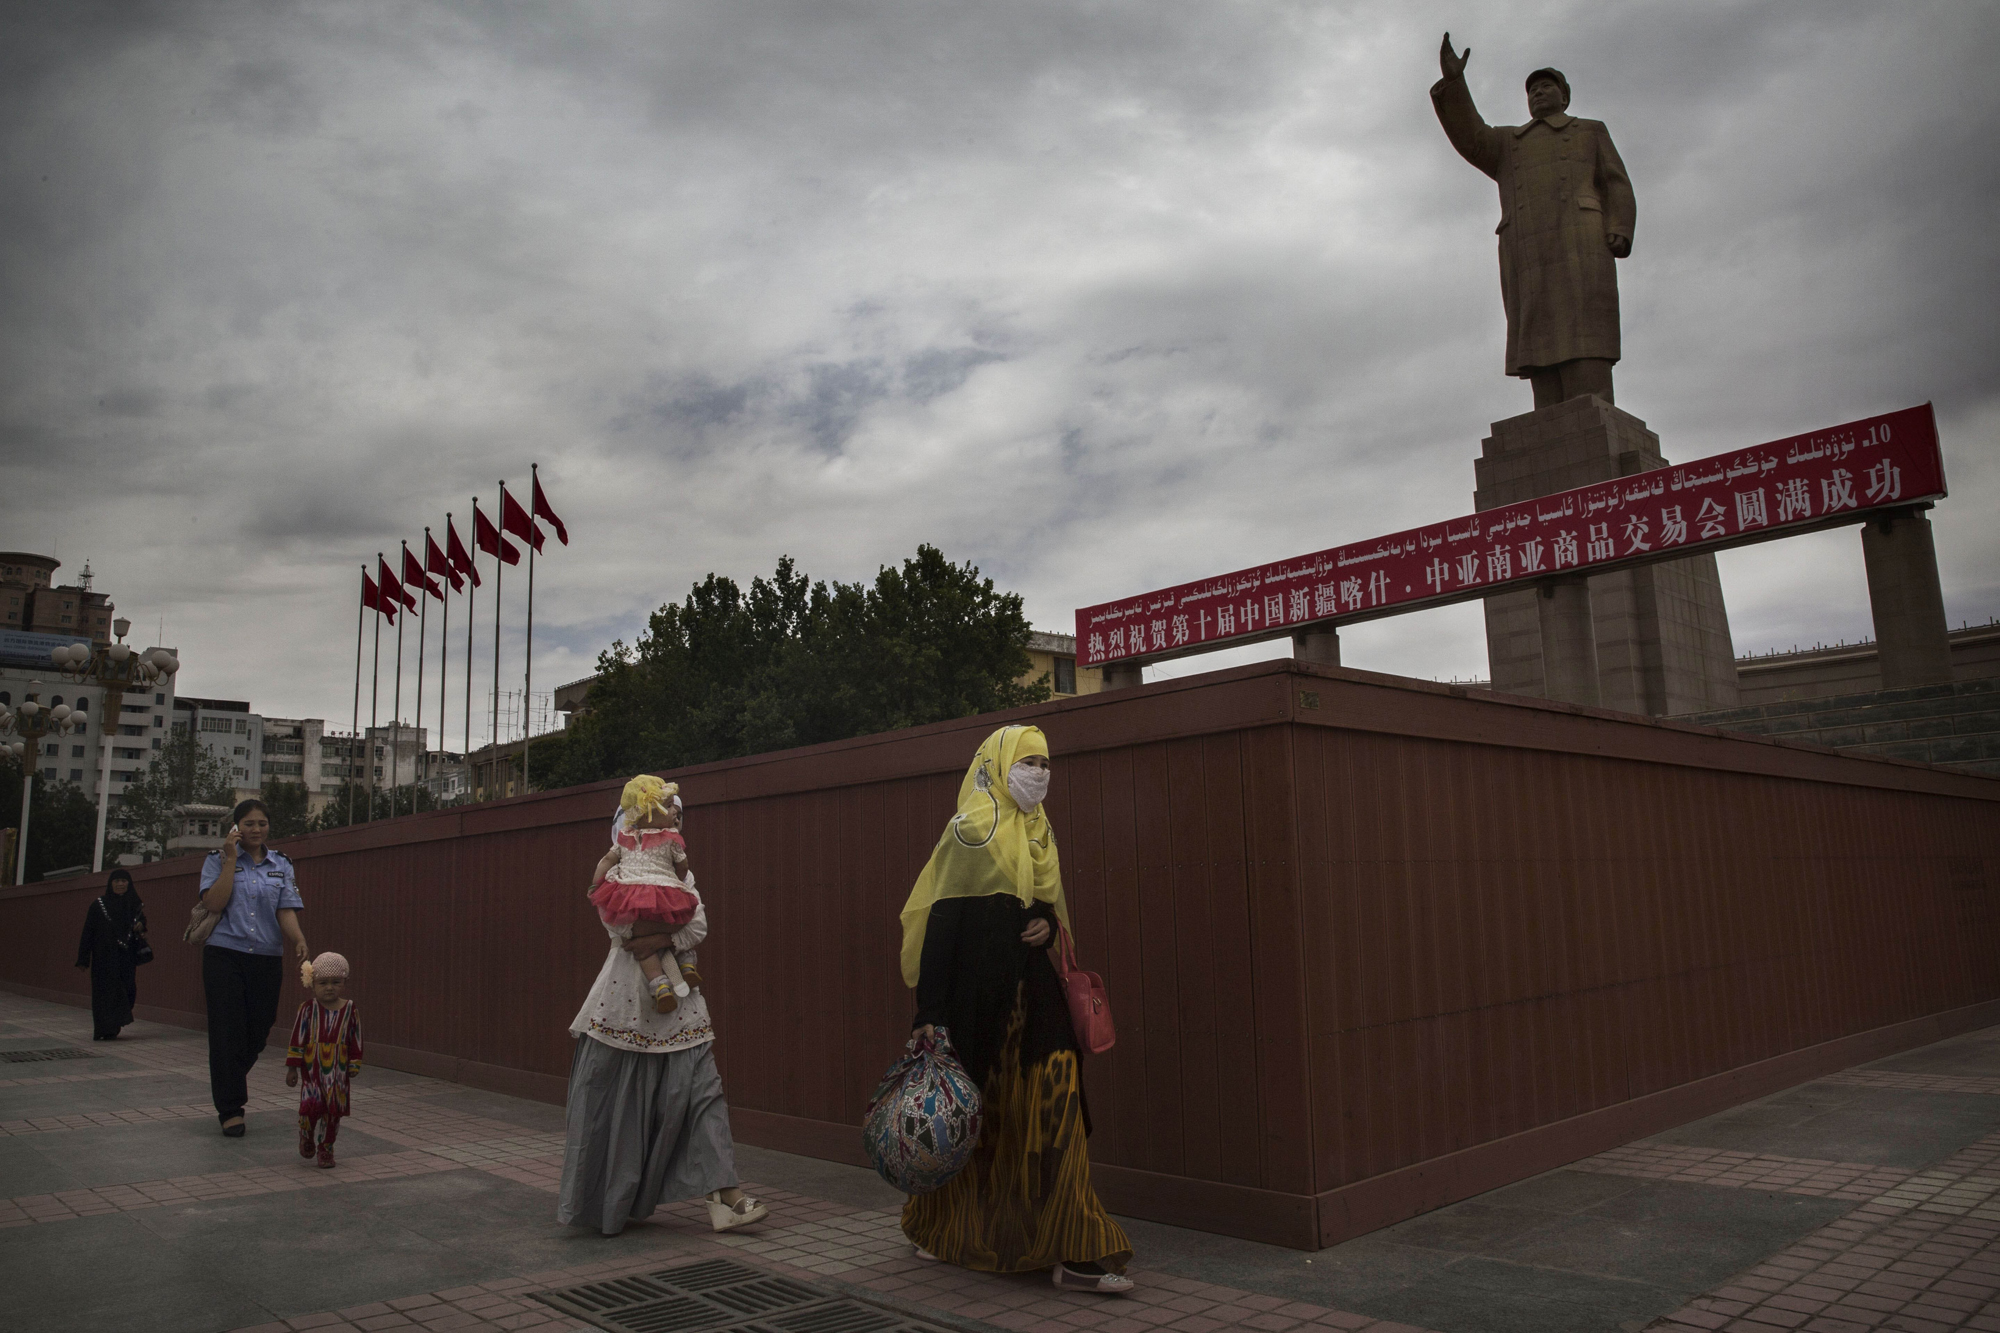 A veiled Muslim Uighur woman walks passed a statue of Mao Zedong on July 31, 2014 in Kashgar.